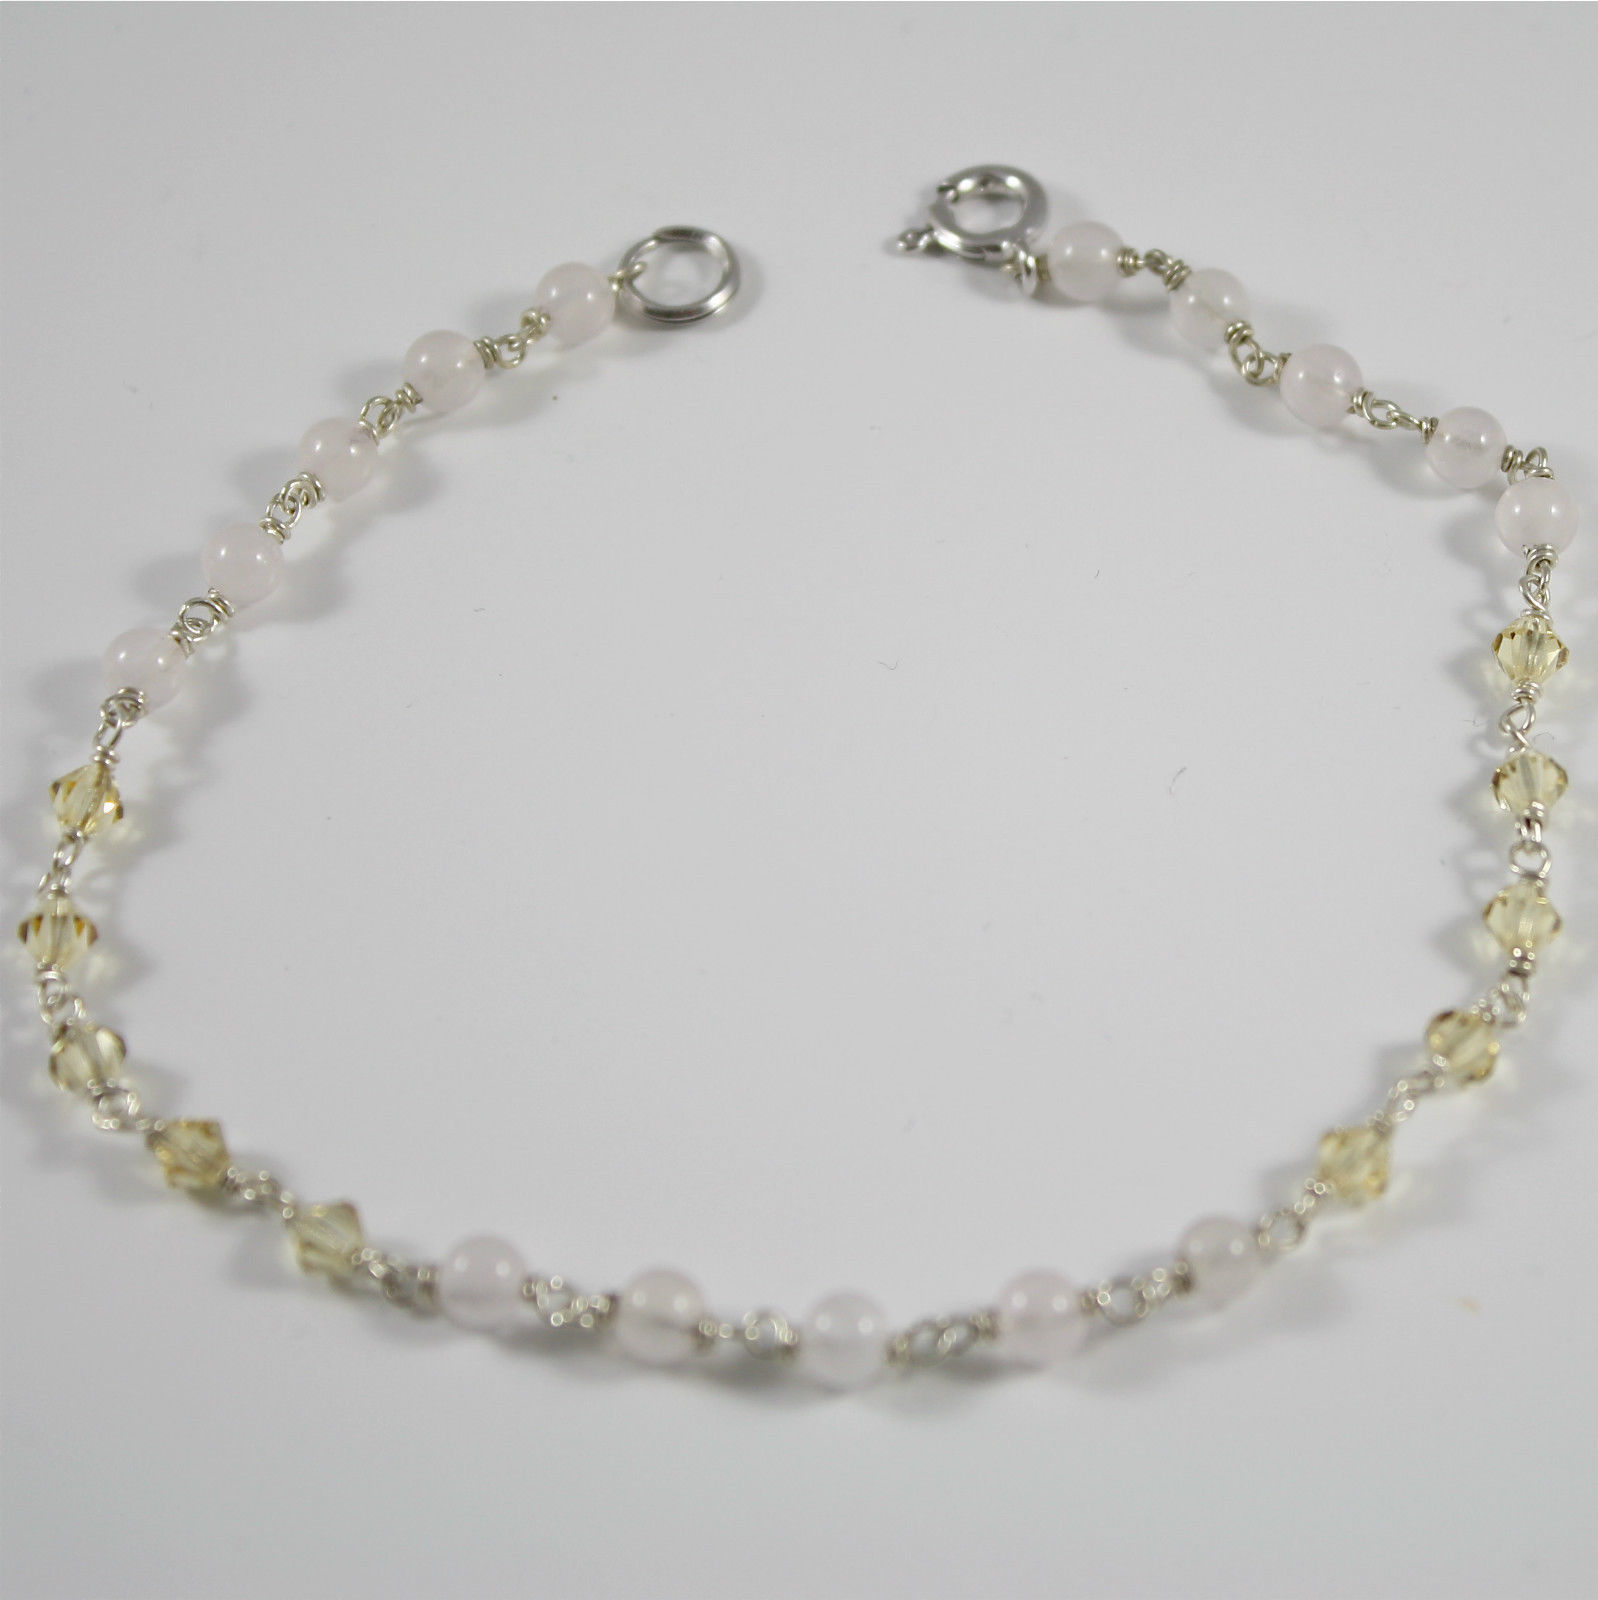 Bracelet-Anklet Silver 925 Rhodium Crystals Yellow and Rose Quartz